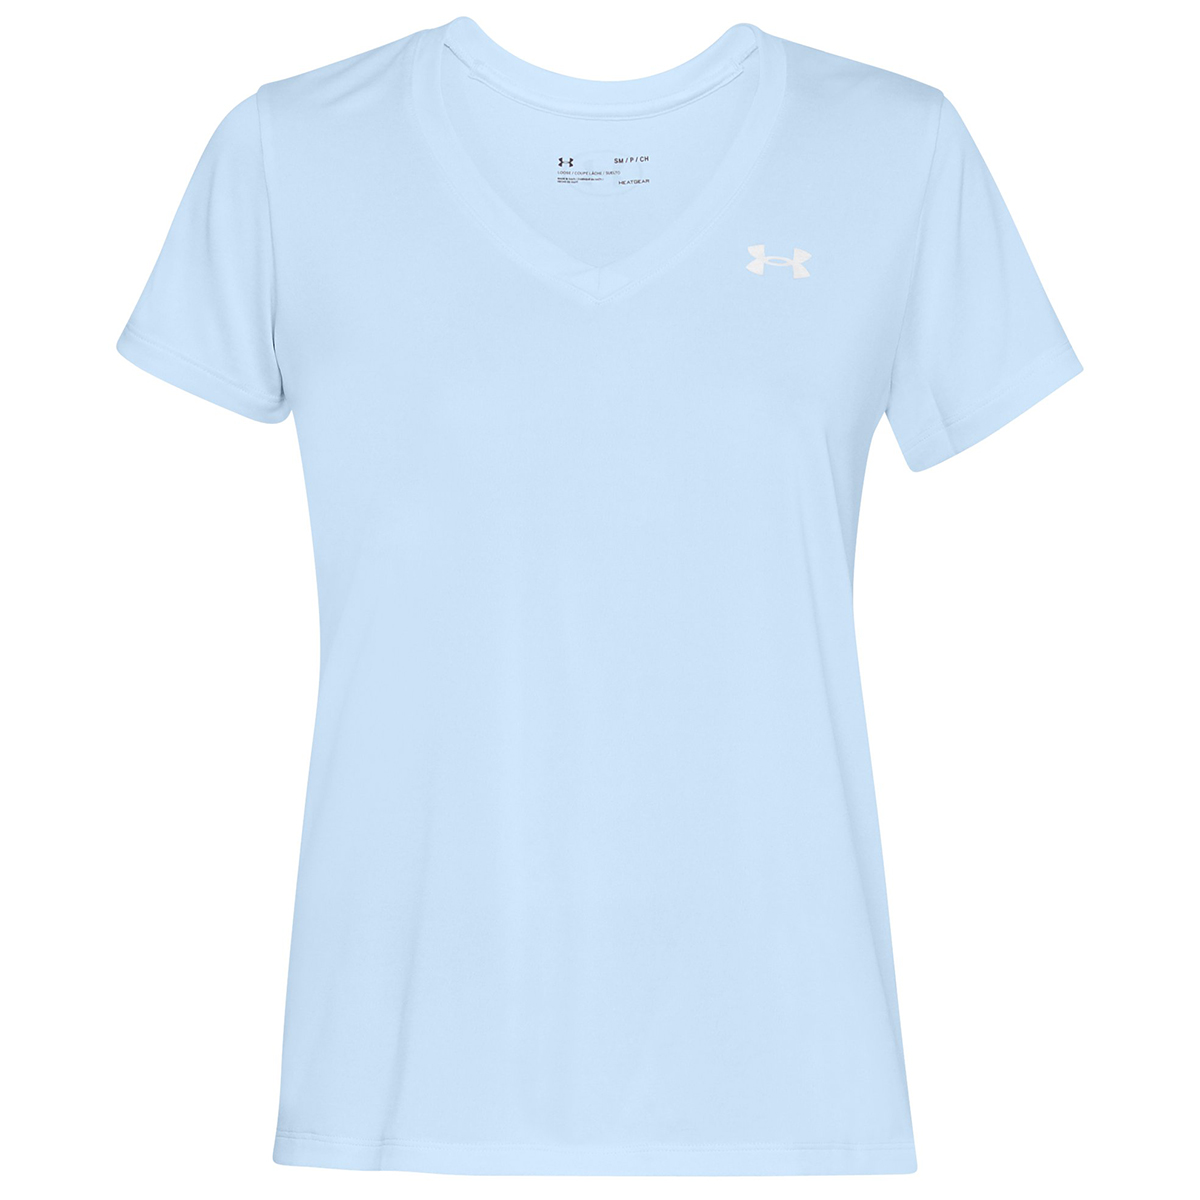 Under Armour Women's Tech Twist V-Neck Tee - Various Patterns, M